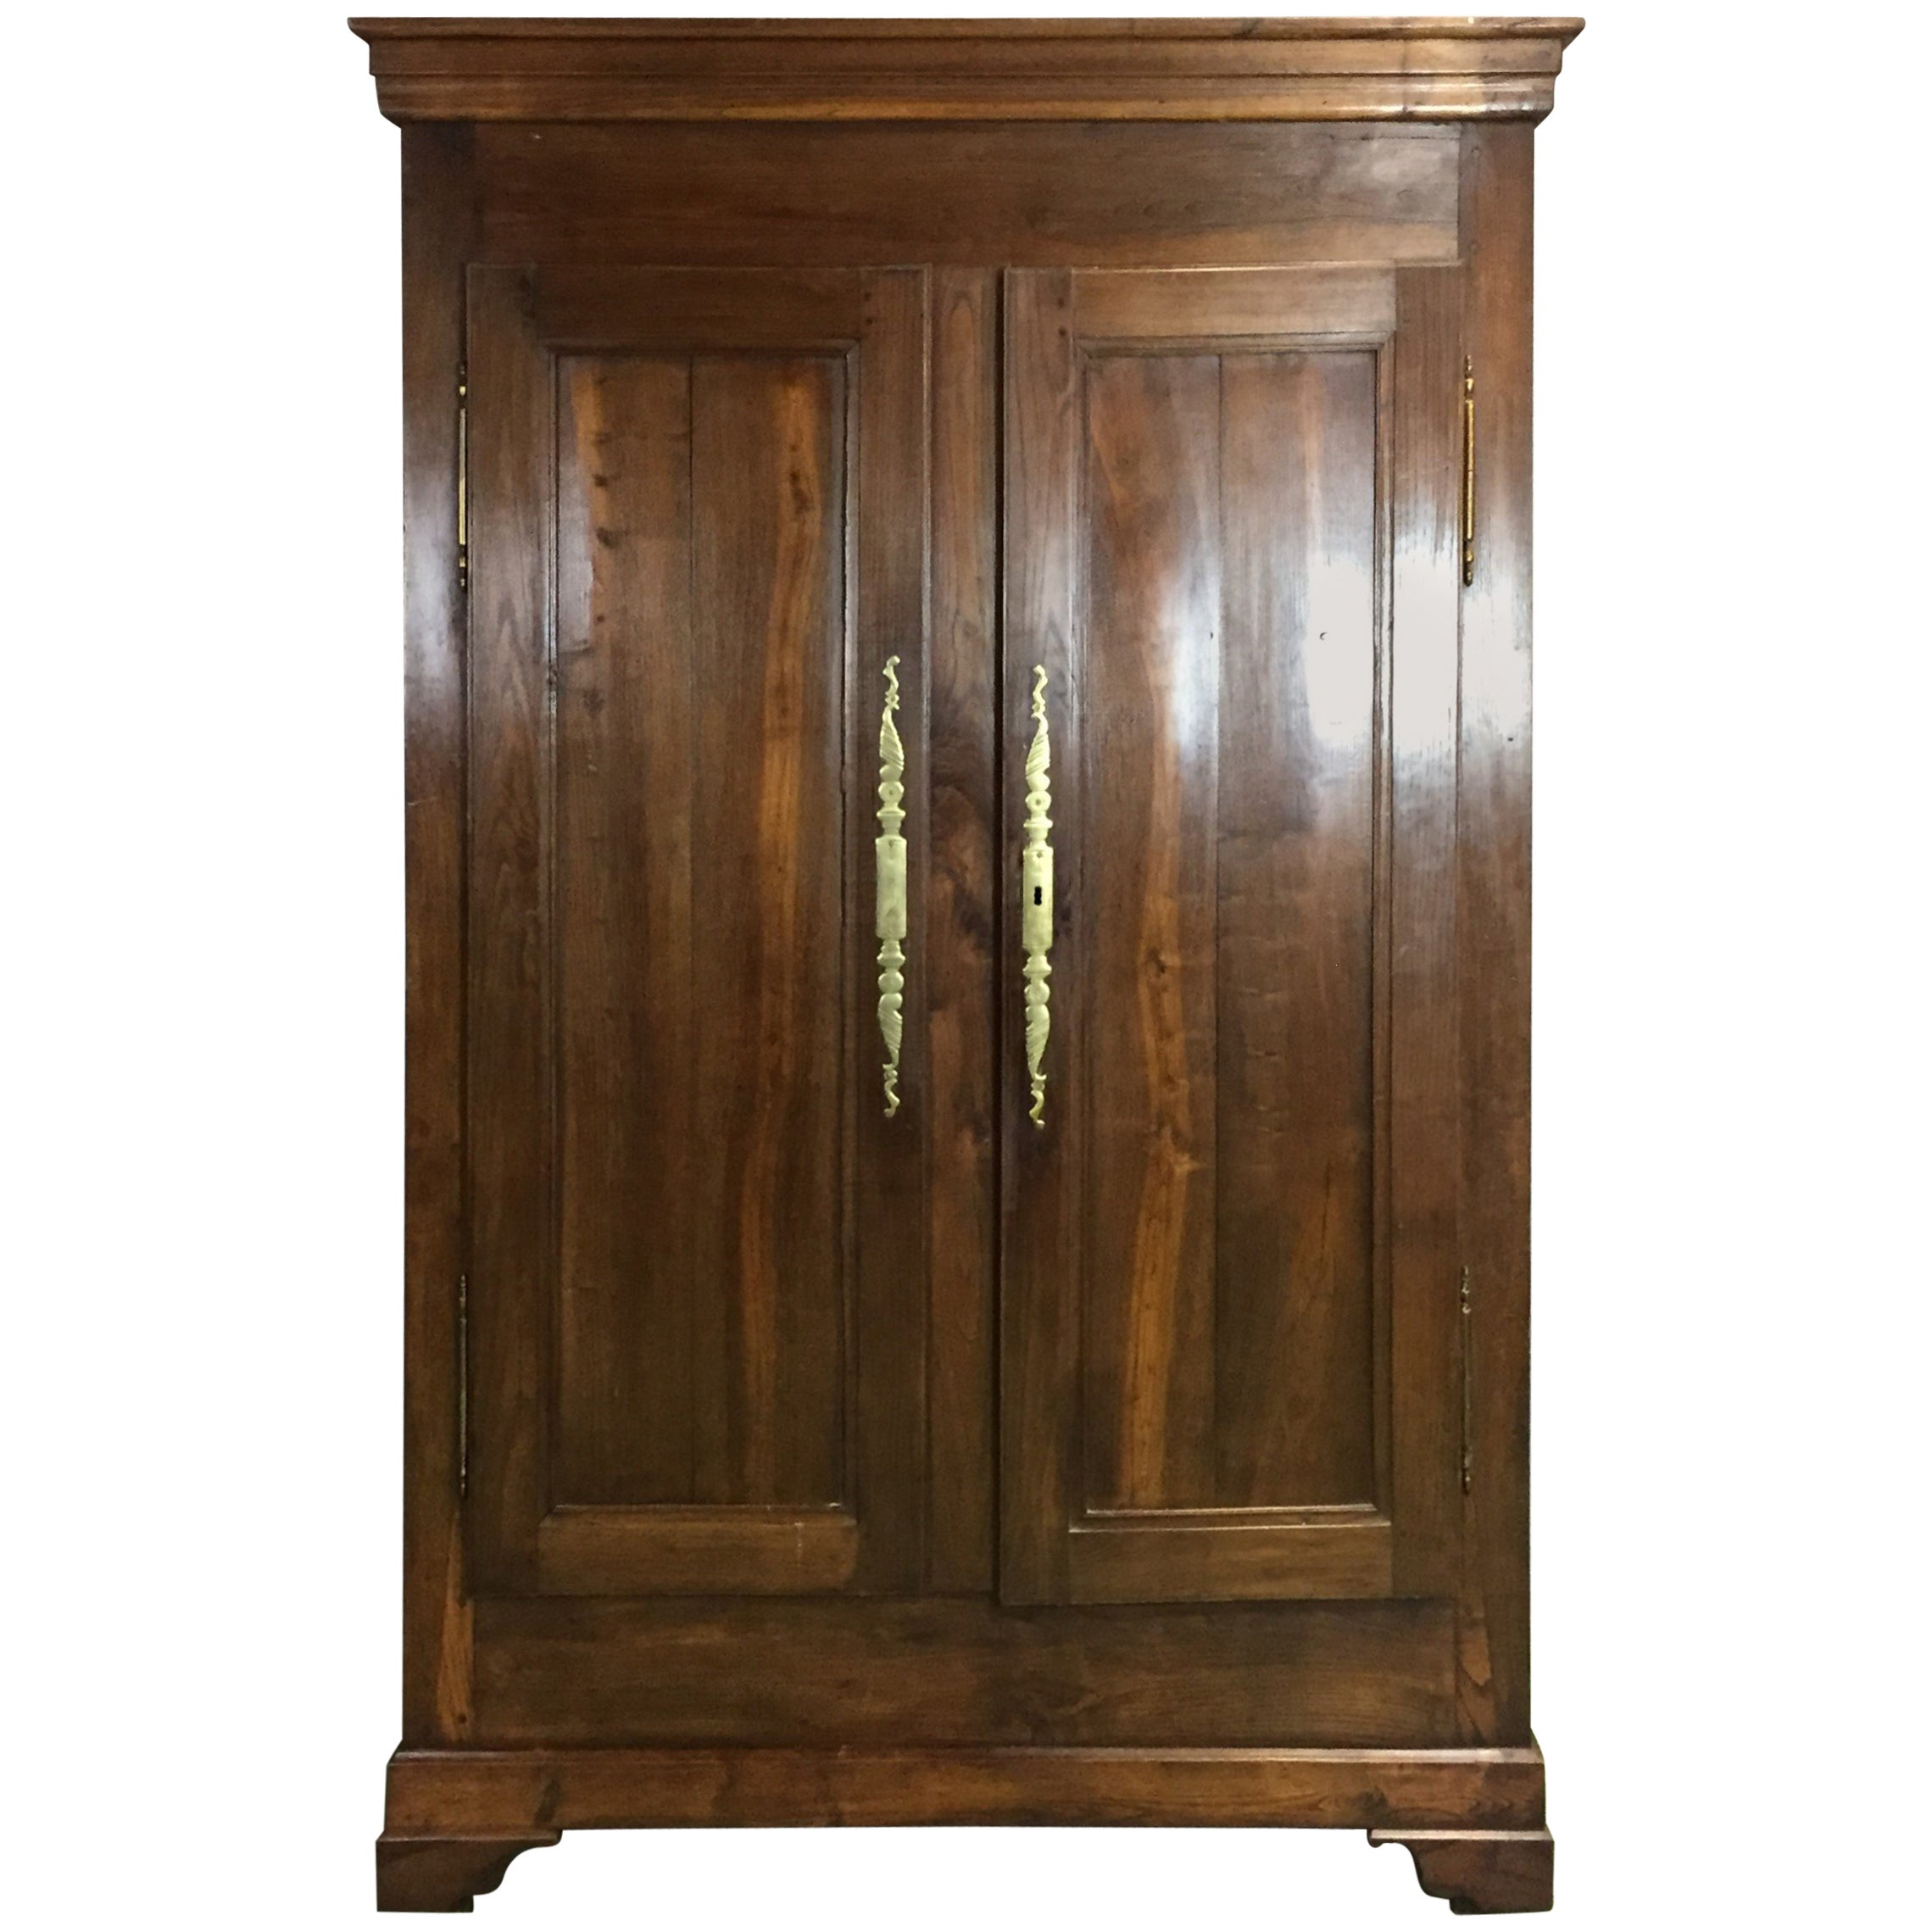 Antique Single Wardrobe Victorian 19Th Century Satin Walnut Mirror At